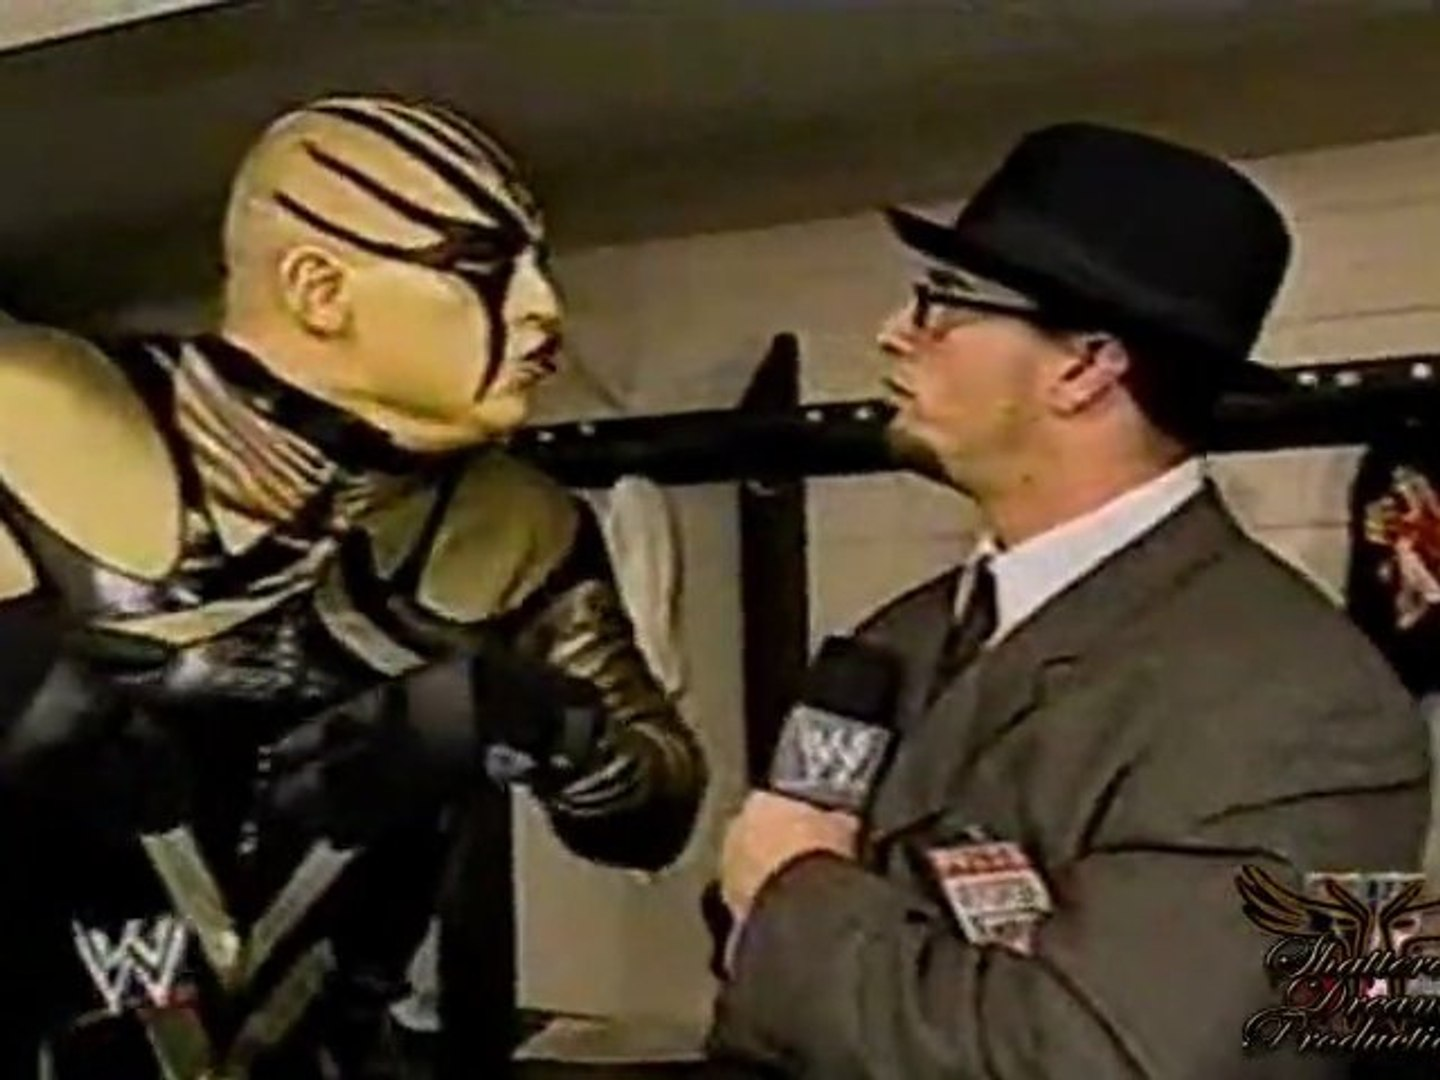 Goldust Discusses His 'Golden Globes' - Raw - 11/11/02